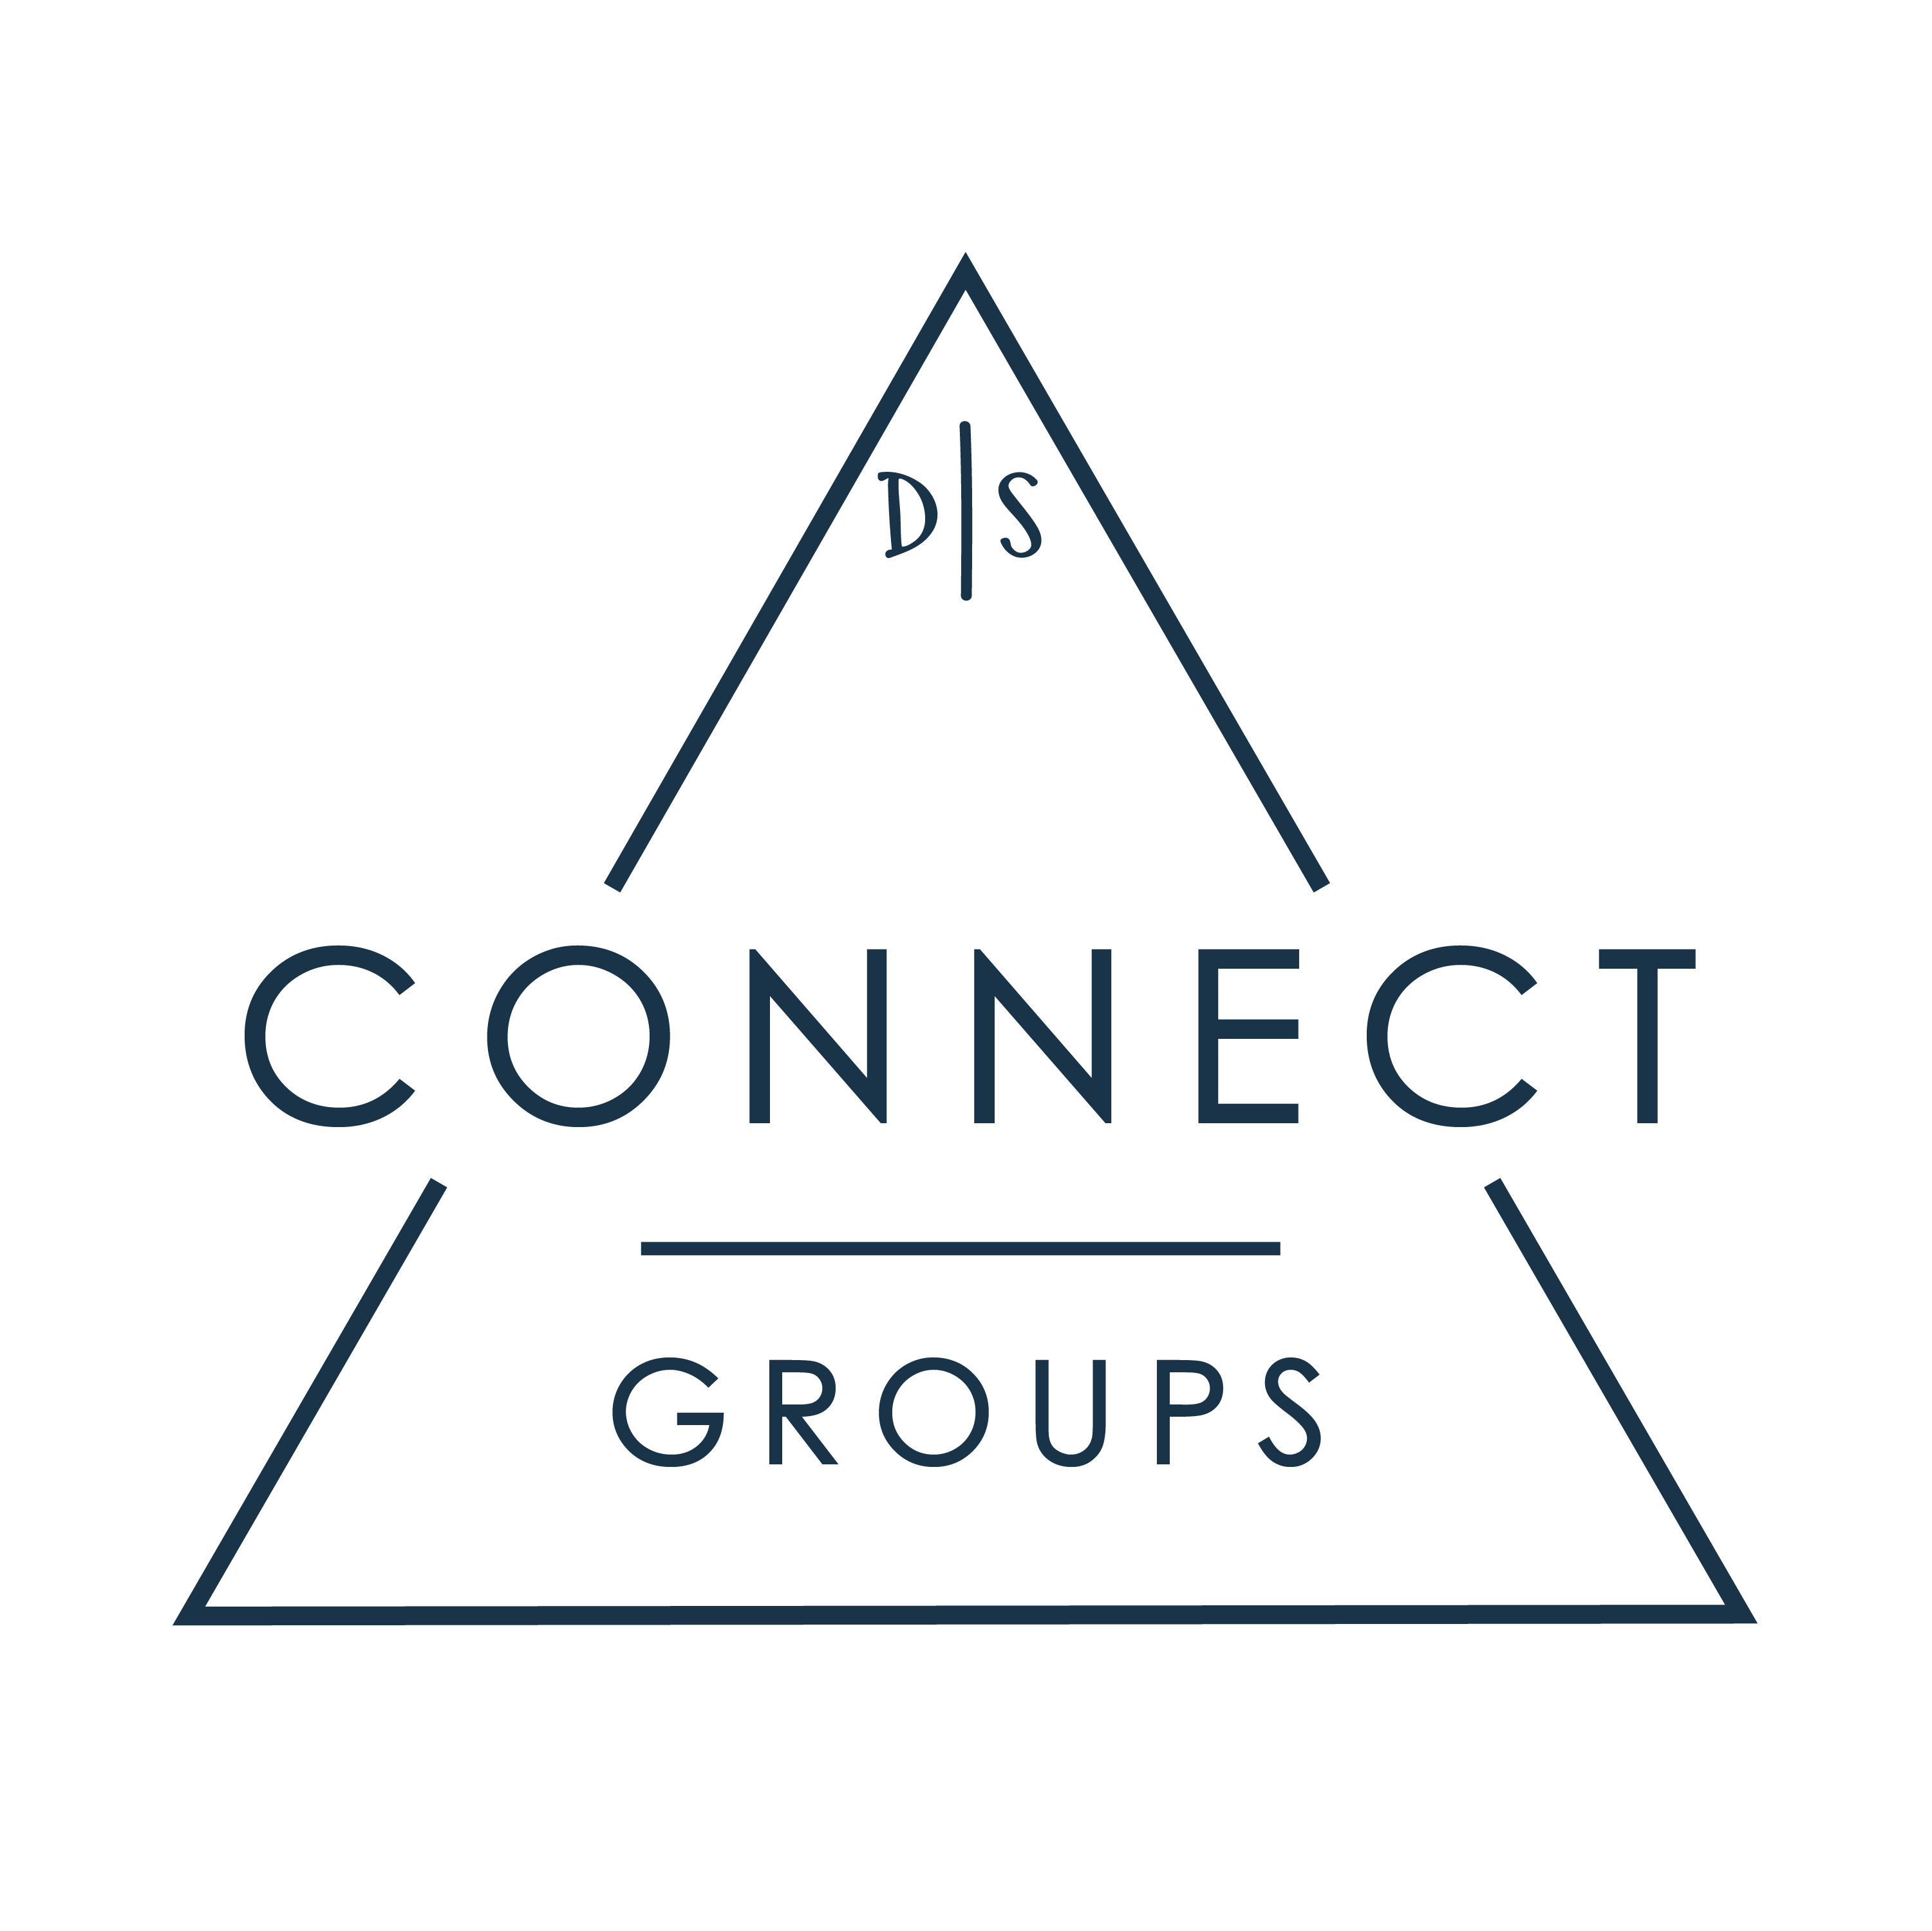 Connect group logo white